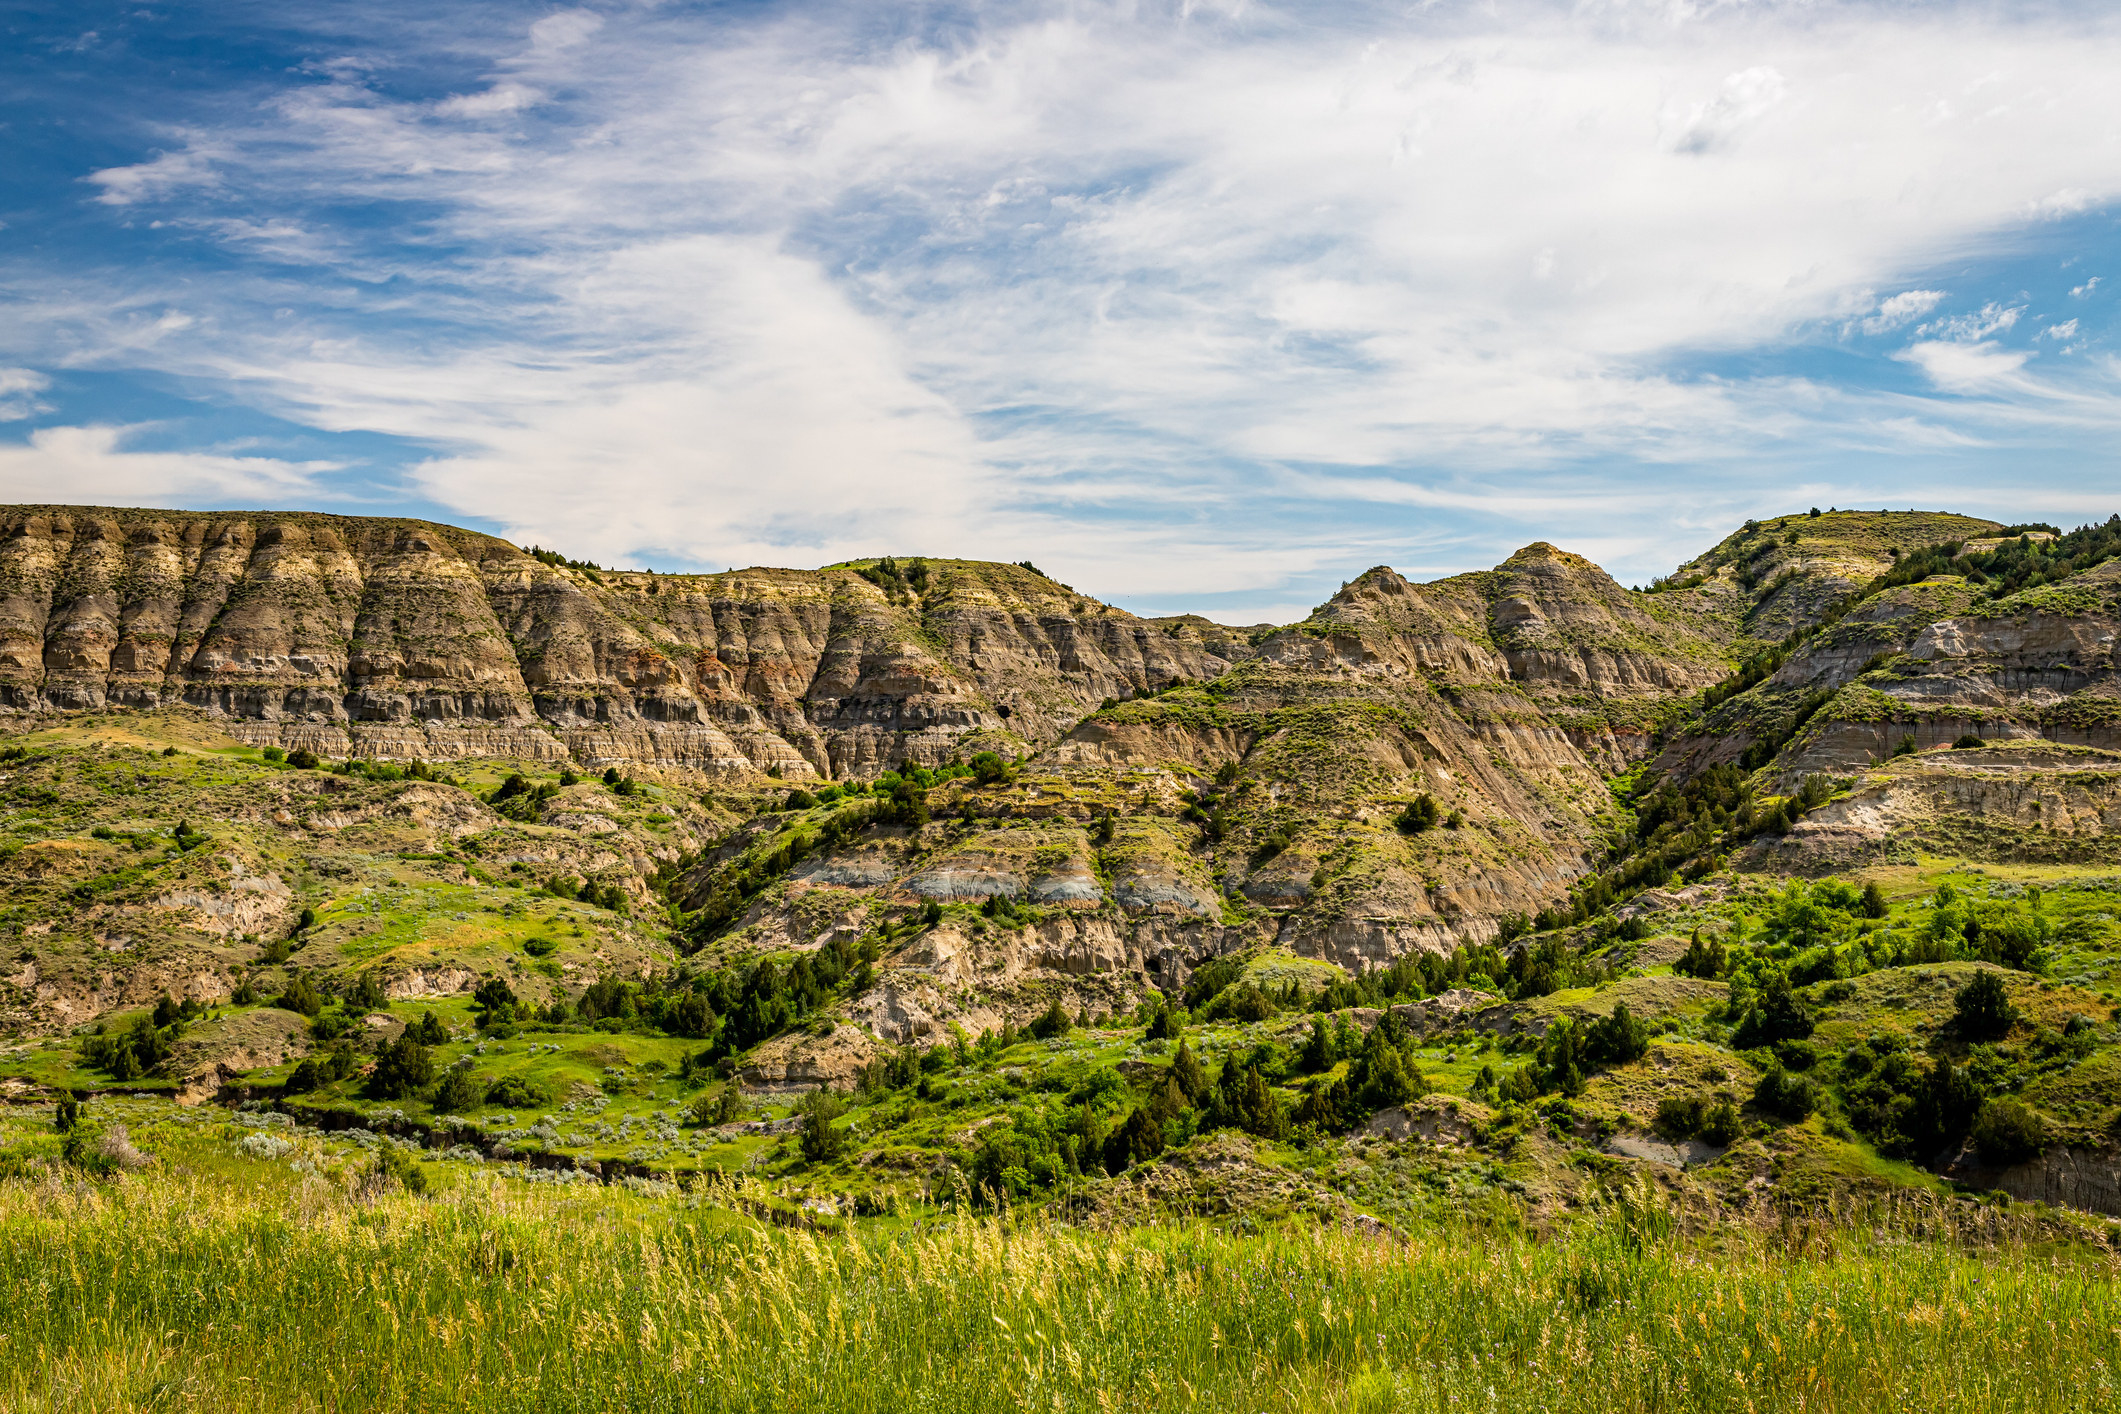 Scenic view of rocky hills covered with greenery along Theodore Roosevelt Expressway in western North Dakota